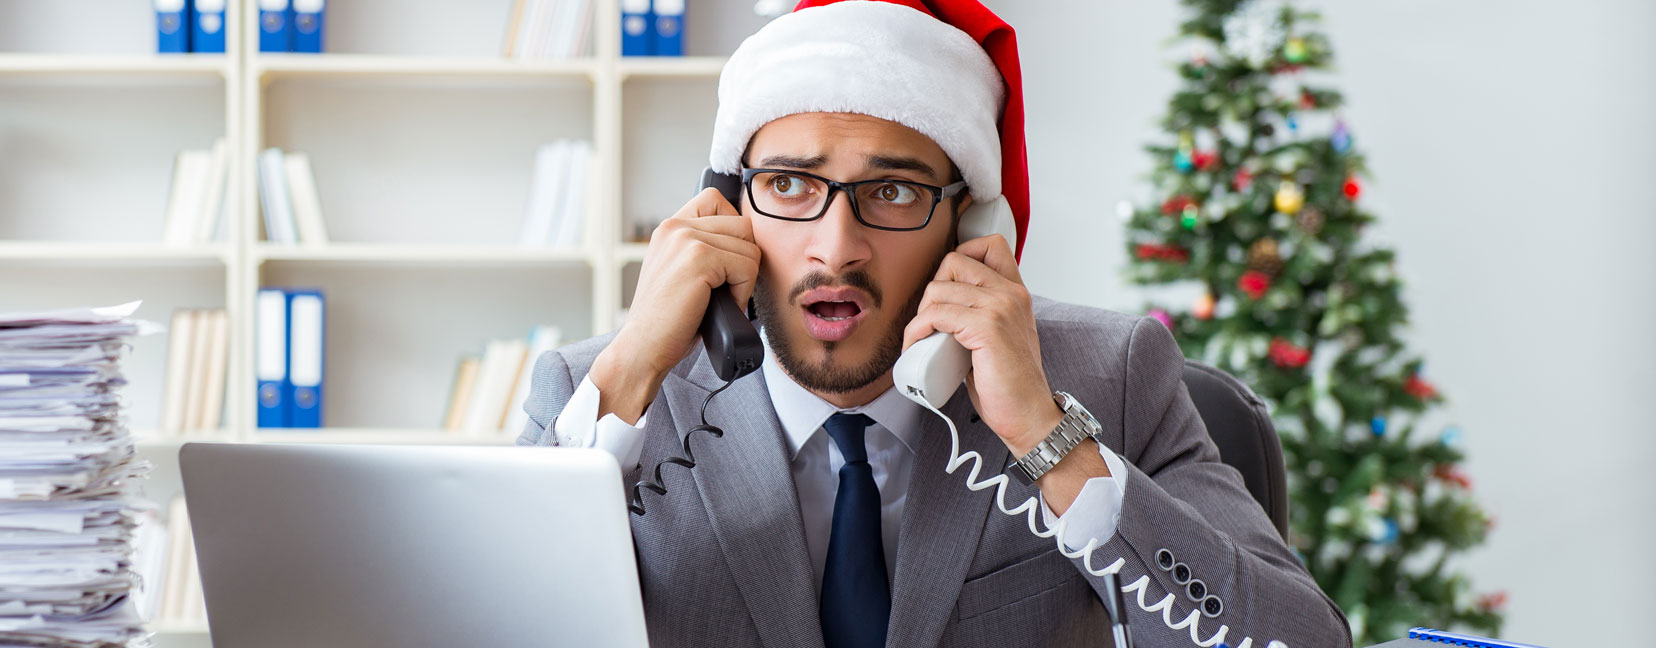 How can an e-commerce business survive the holiday madness?